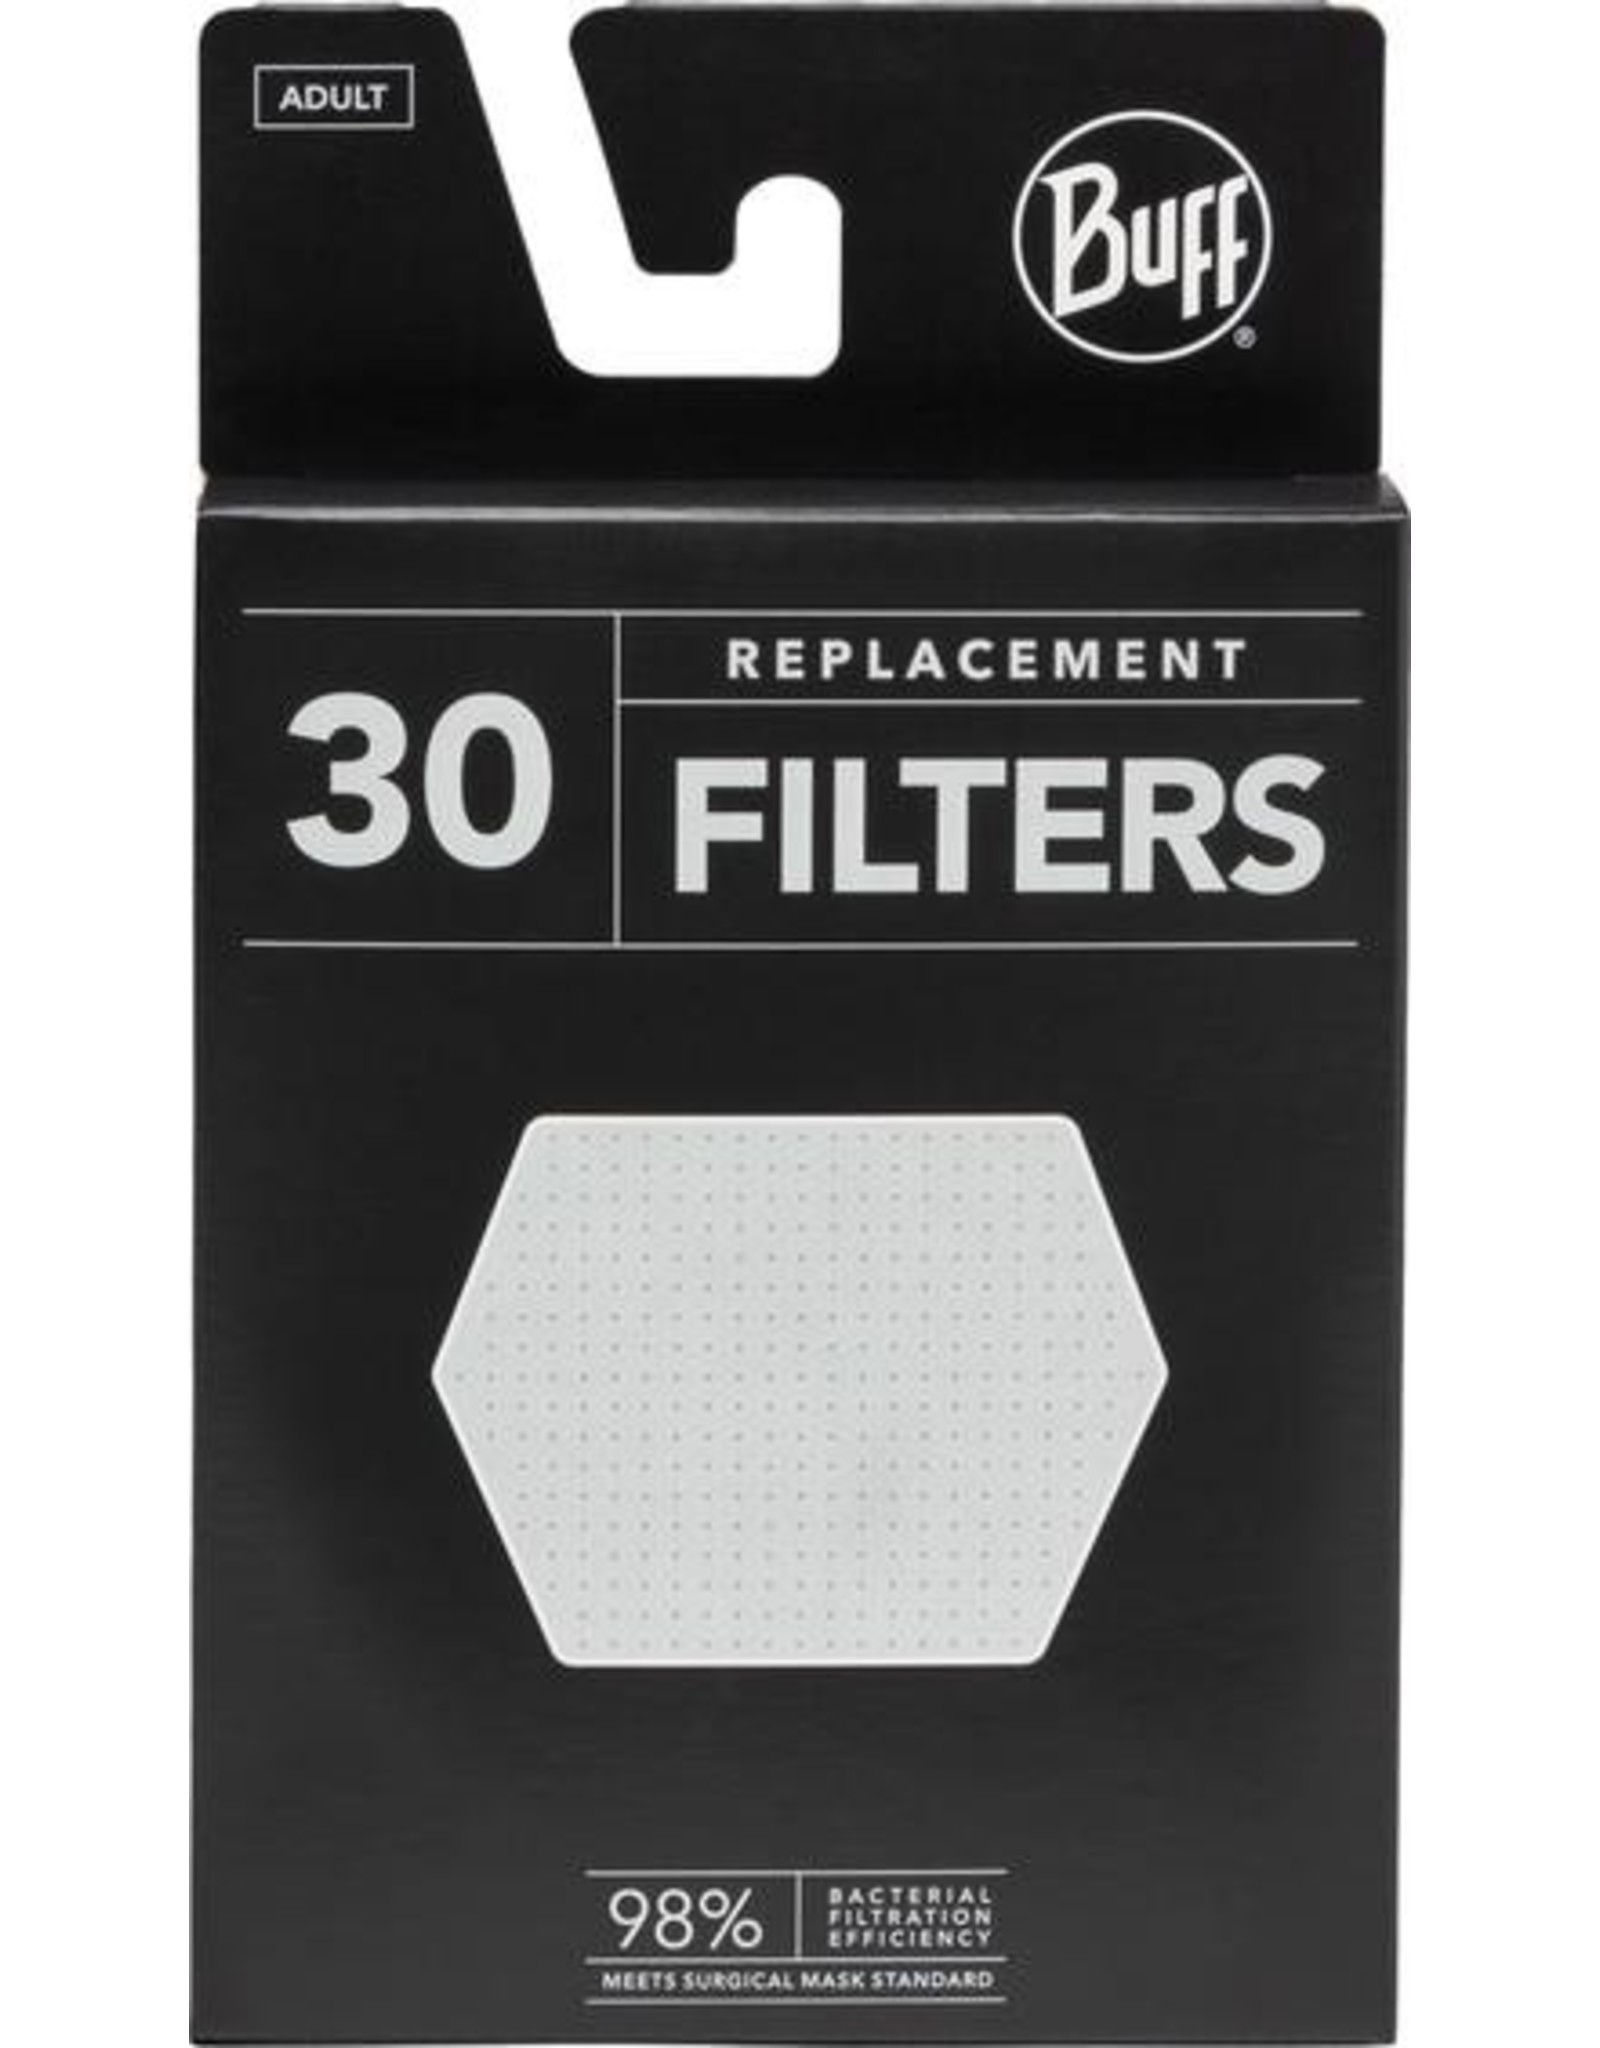 Buff Buff Filter 30 Adult White